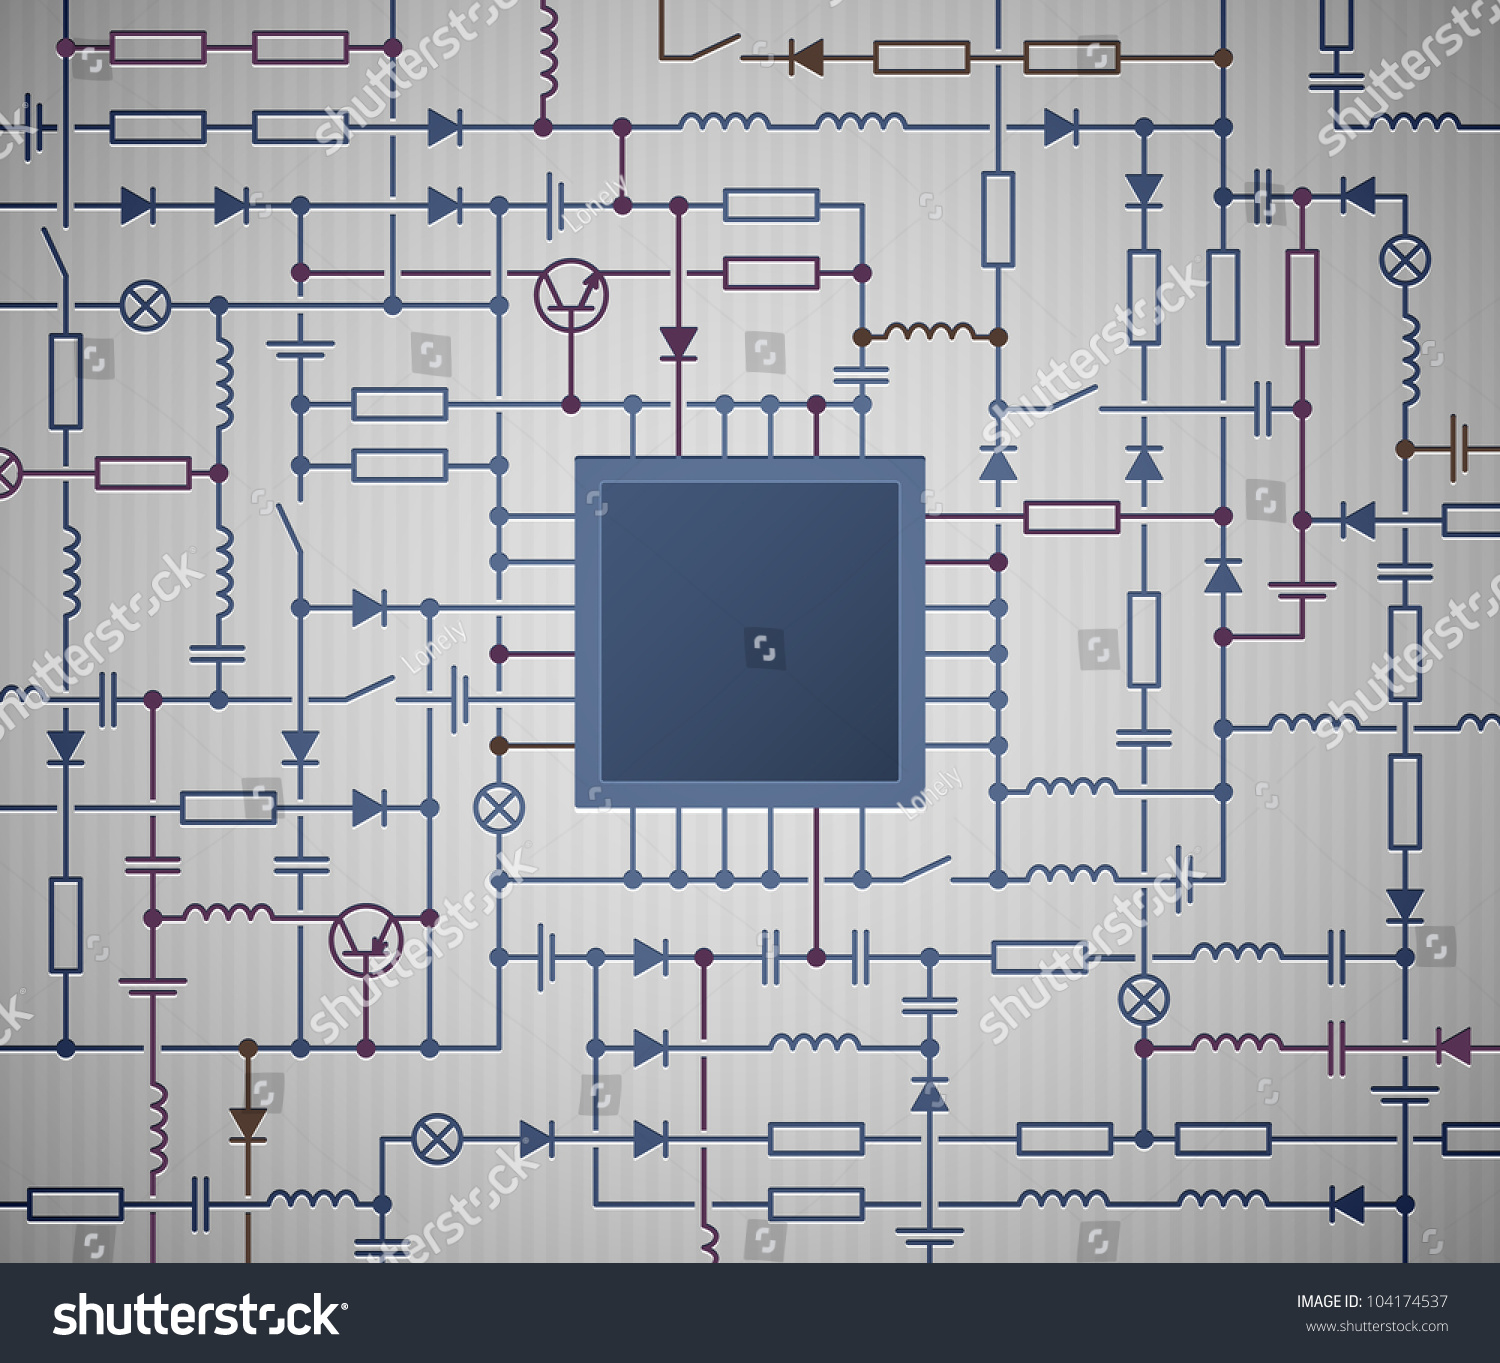 hight resolution of background with an electrical circuit diagram with processor